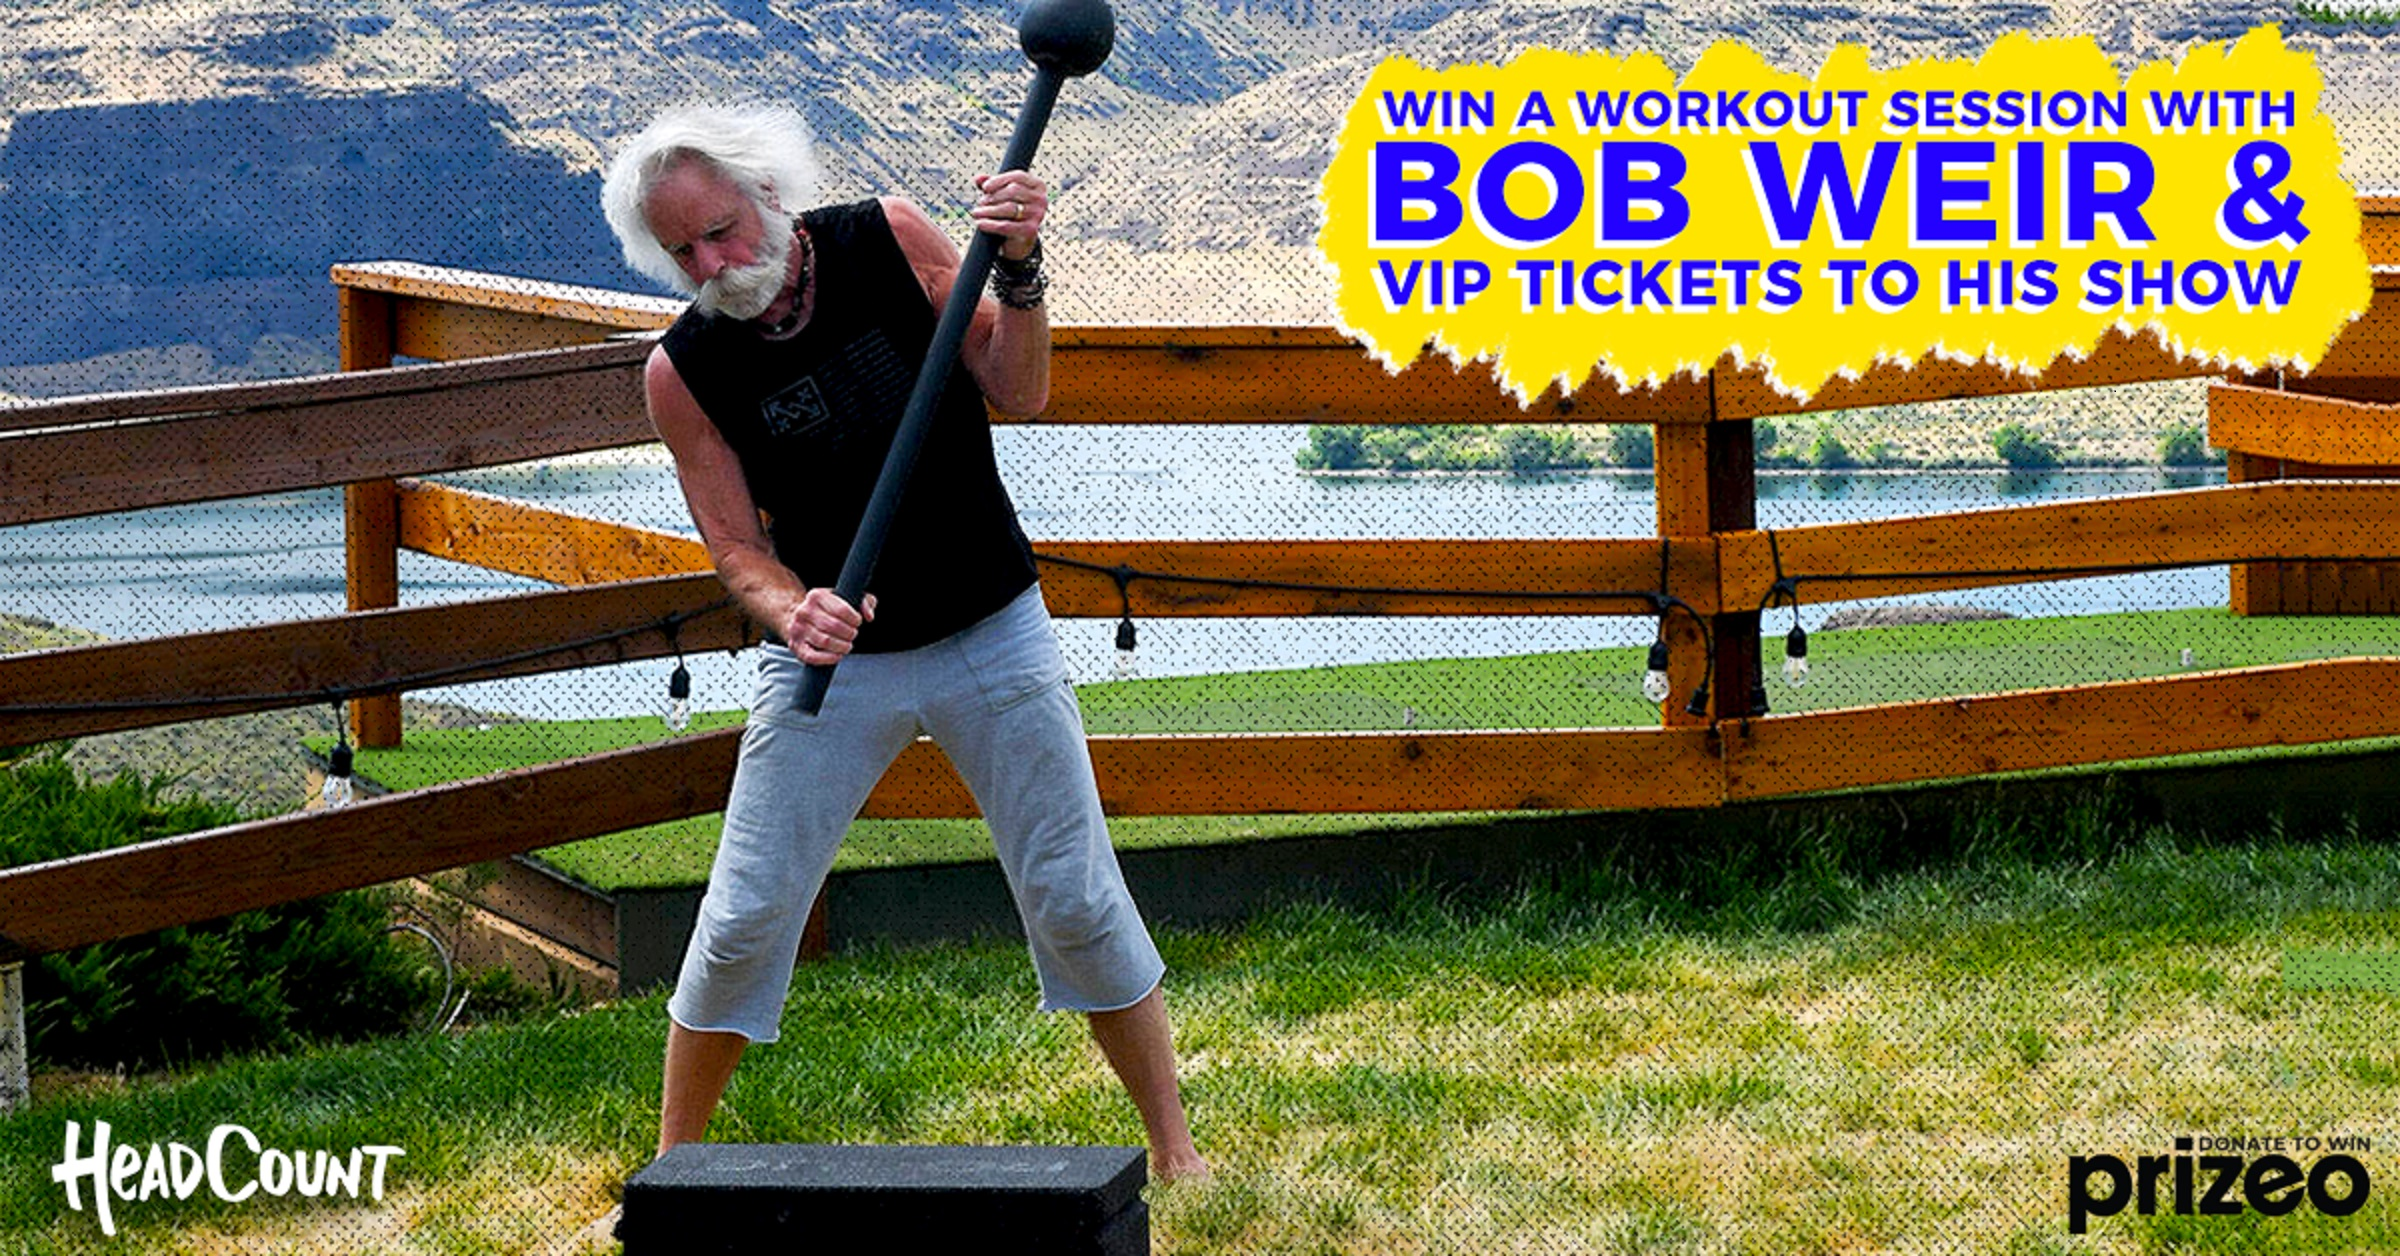 Win a Workout With Bob Weir!